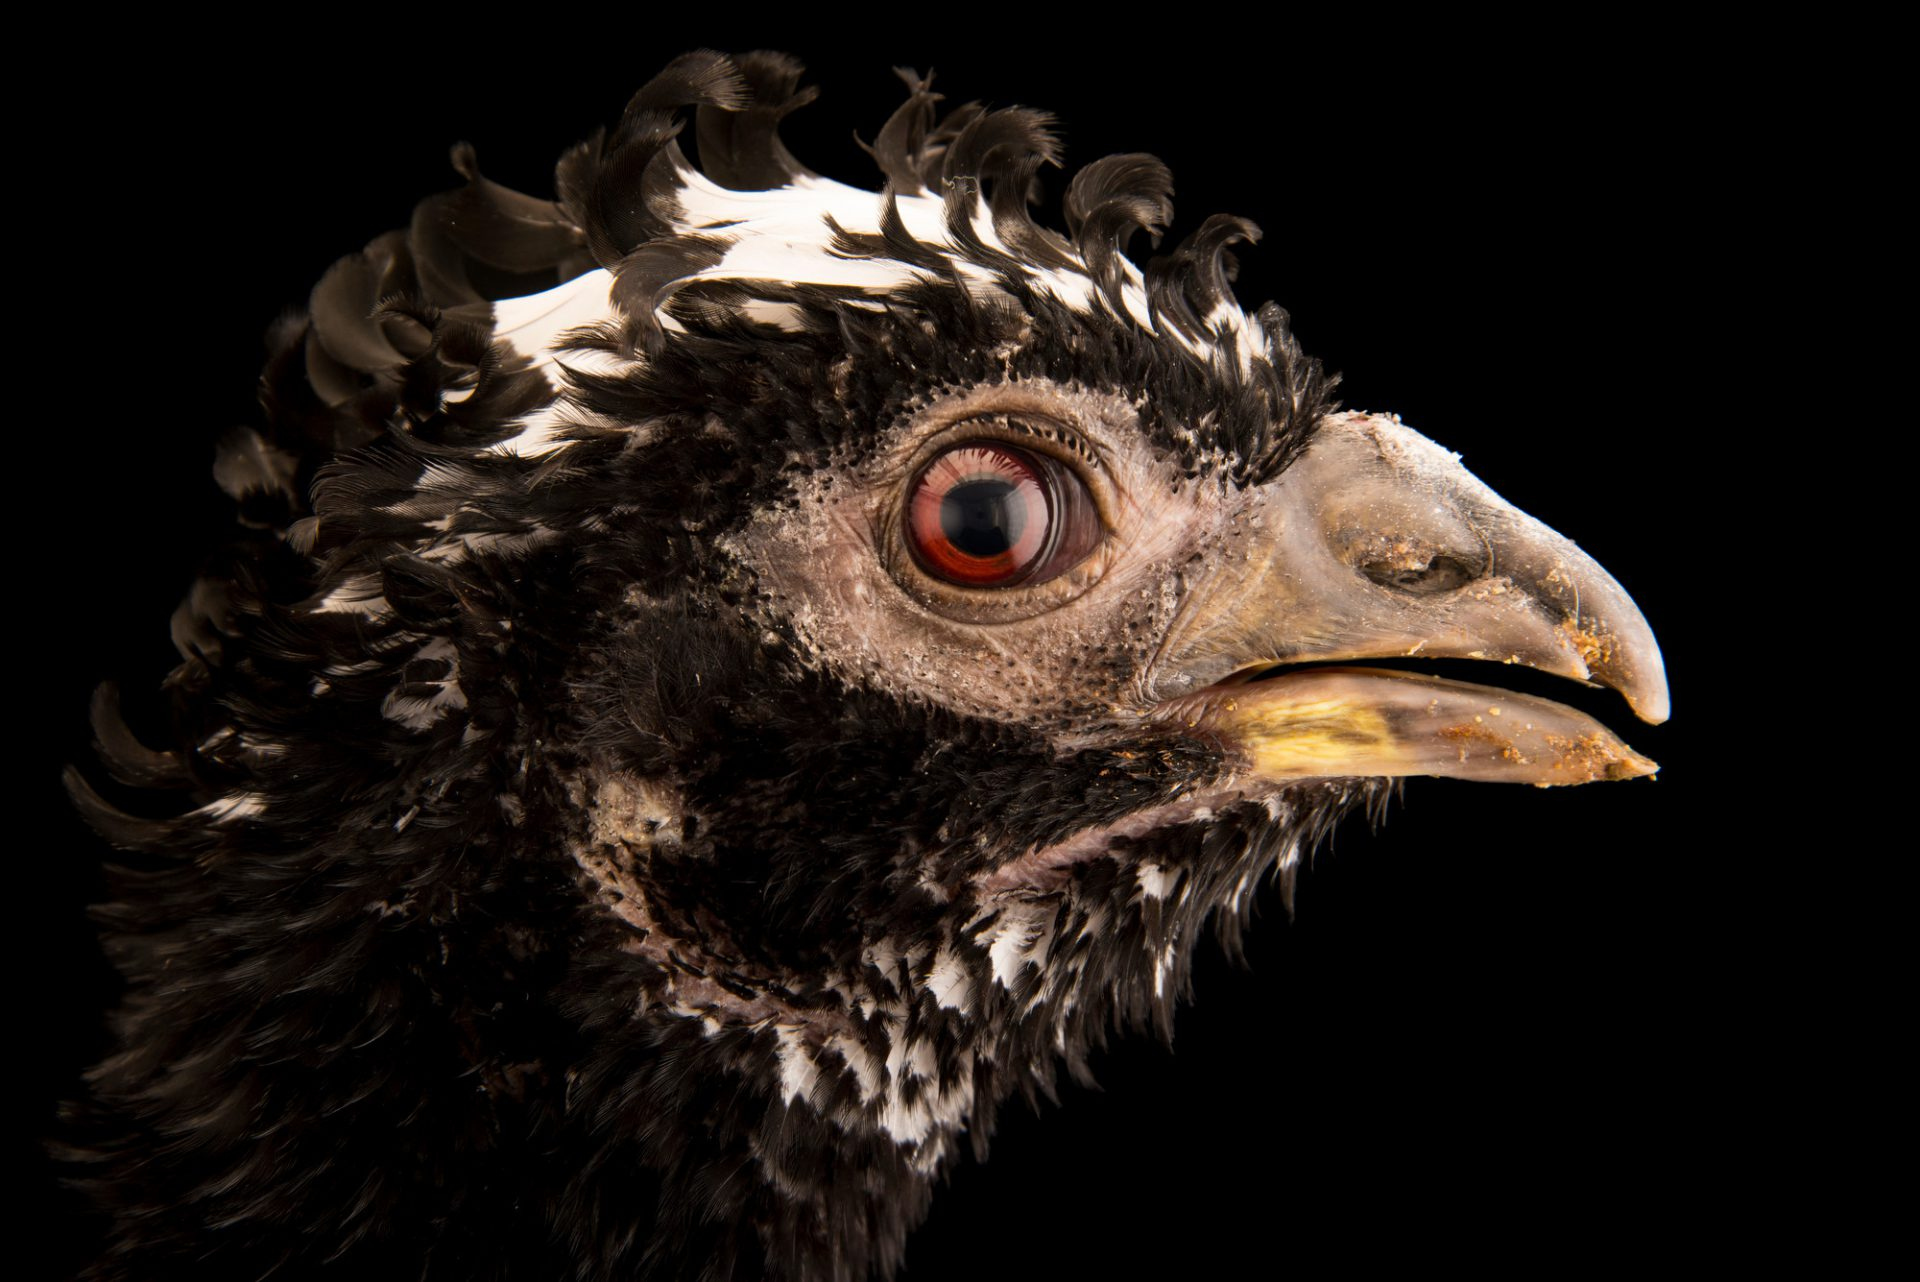 Photo: A vulnerable bare faced curassow (Crax fasciolata) at the Faunia zoo in Madrid, Spain.